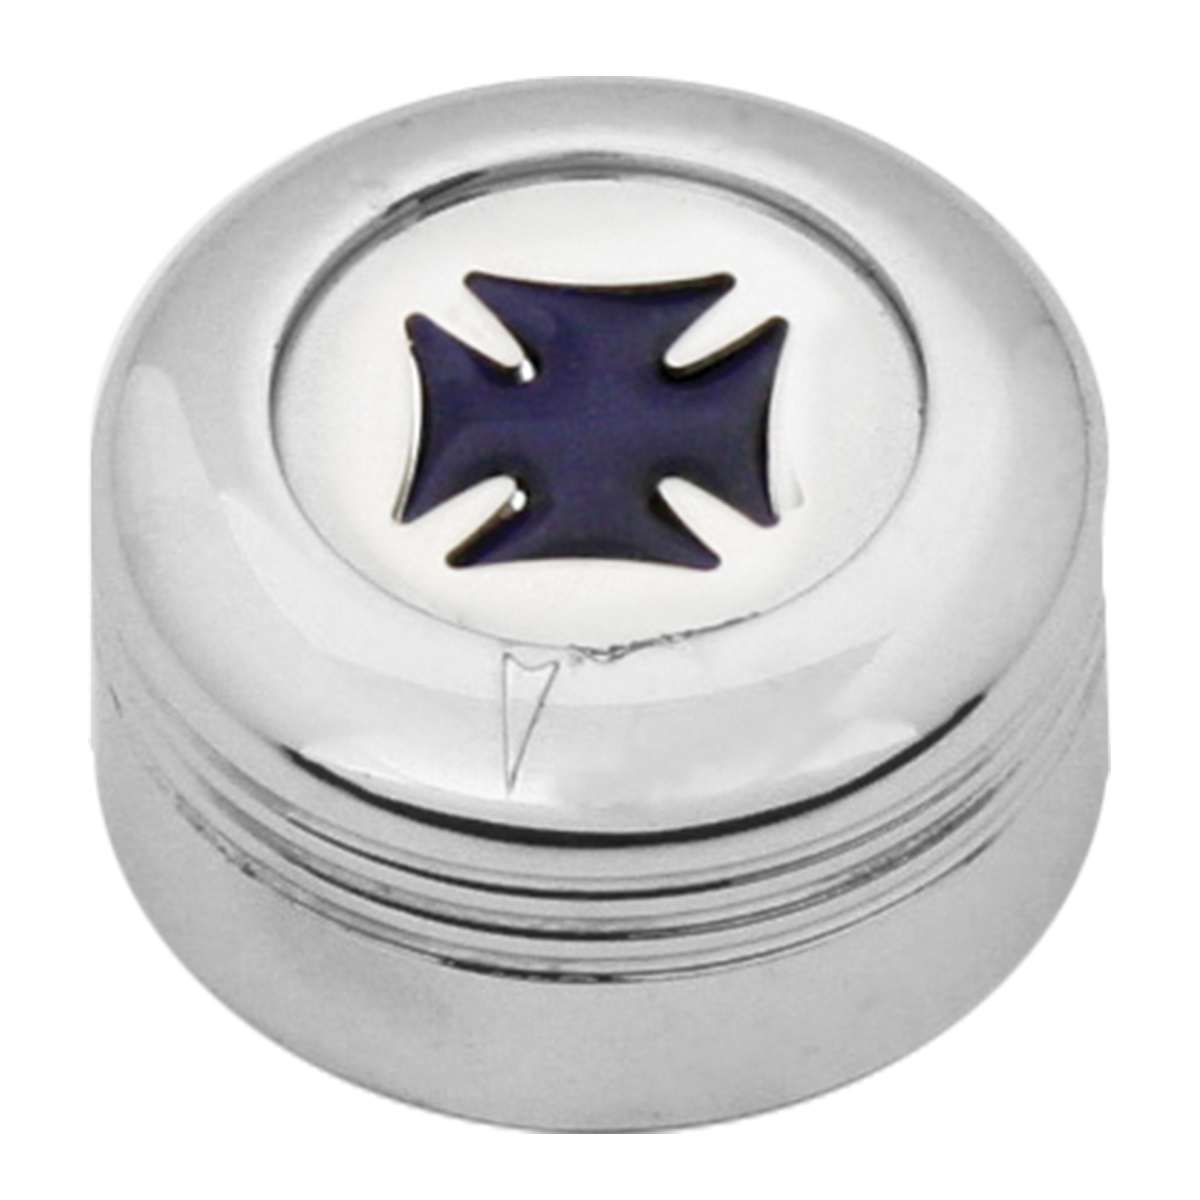 Chrome Plastic A/C Knob w/ Purple Iron Cross for Pete